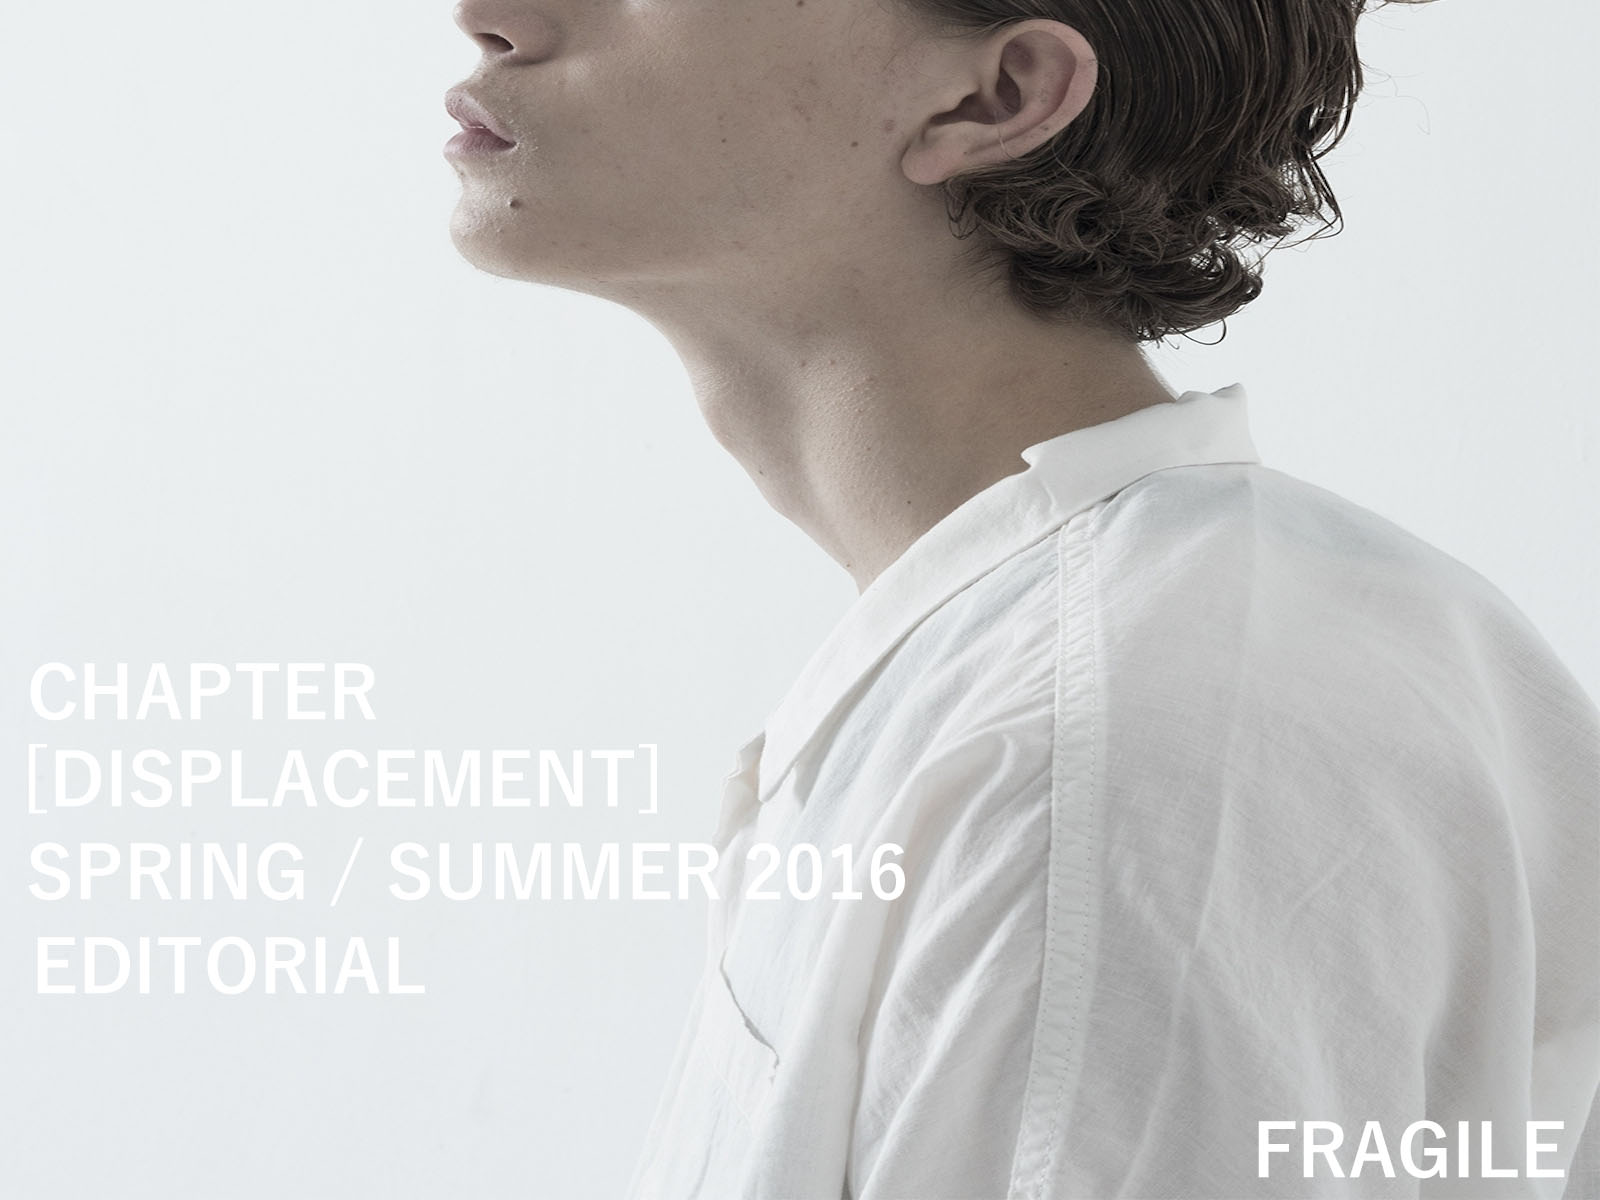 CHAPTER – SPRING / SUMMER 2016 coming soon…